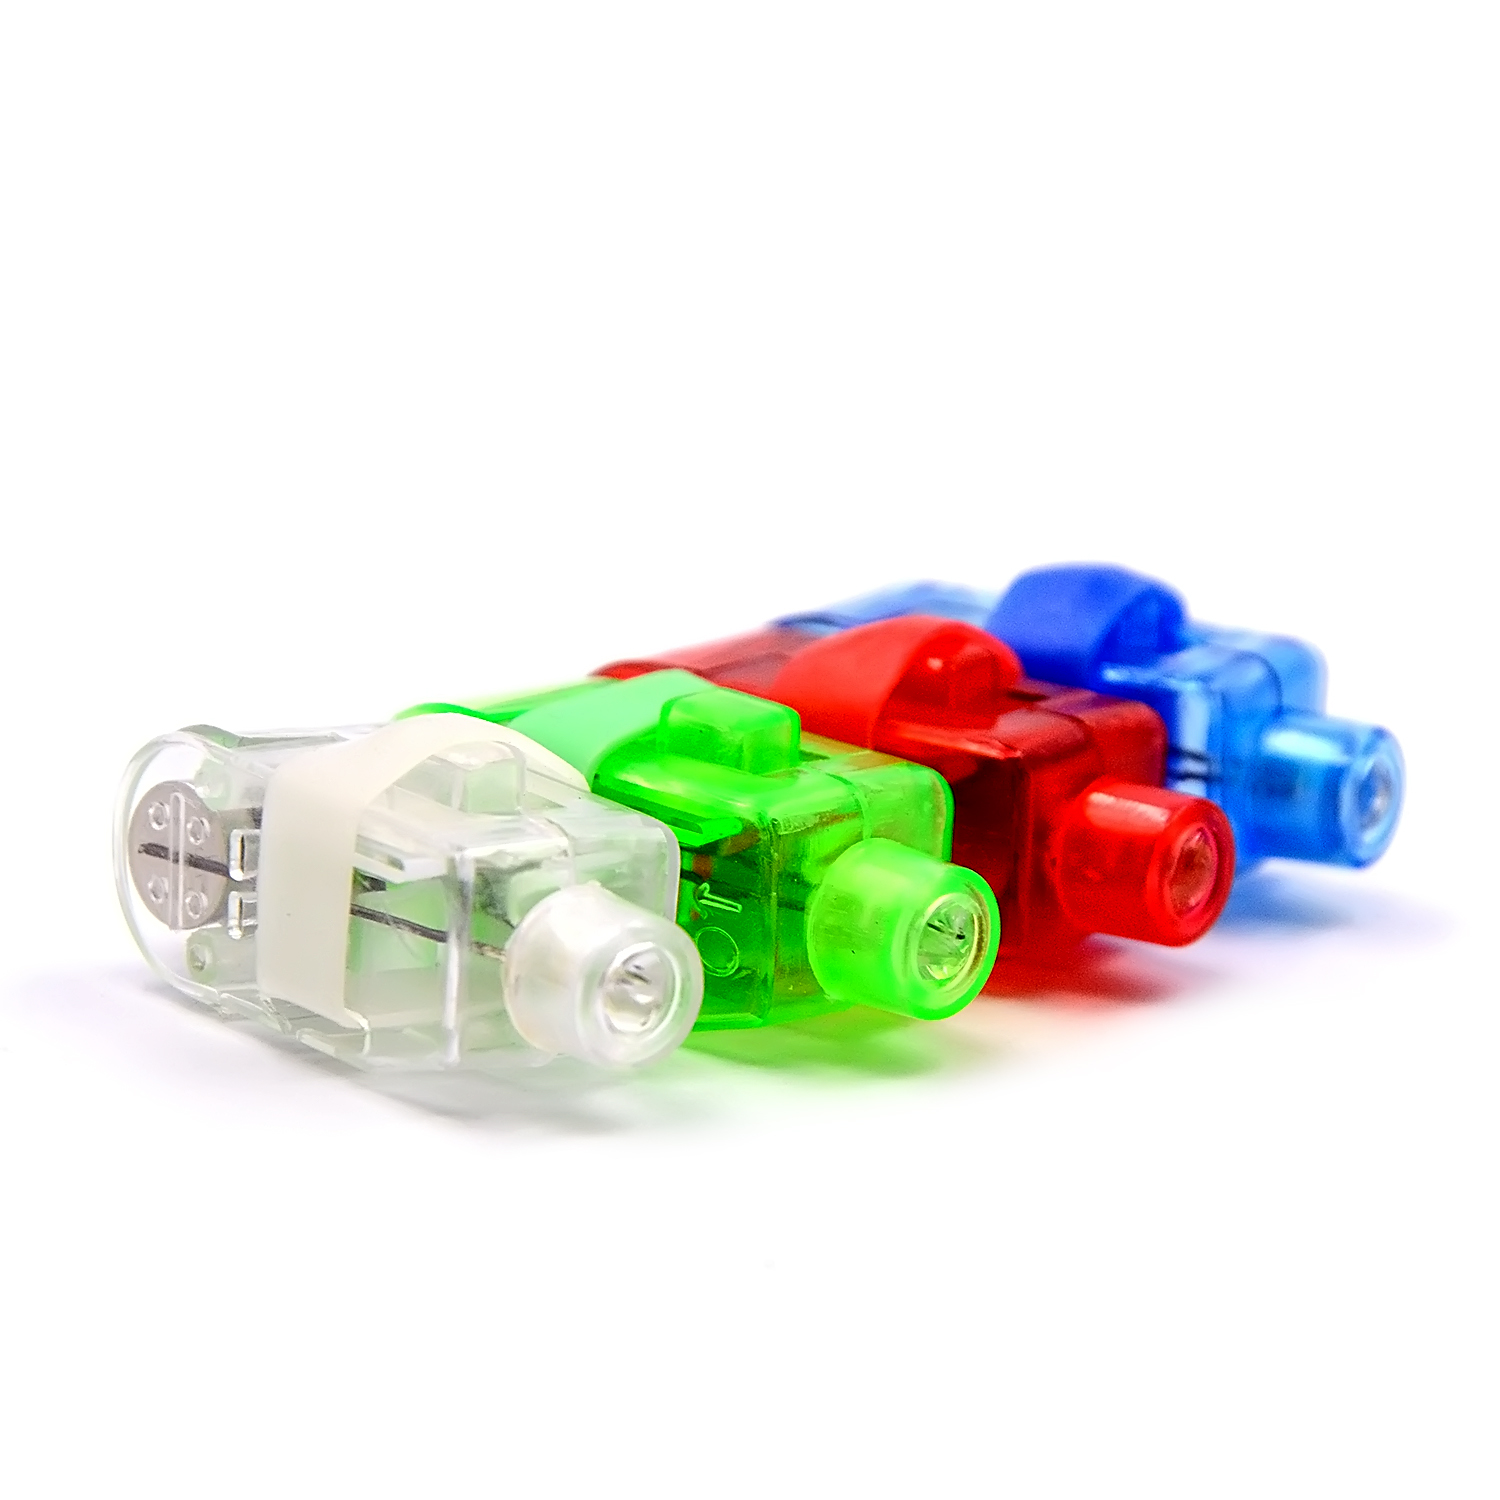 4 PCS Mixed Color Led Finger Flashlight Light Lamp Toy For Party Birthday Christmas Decorations